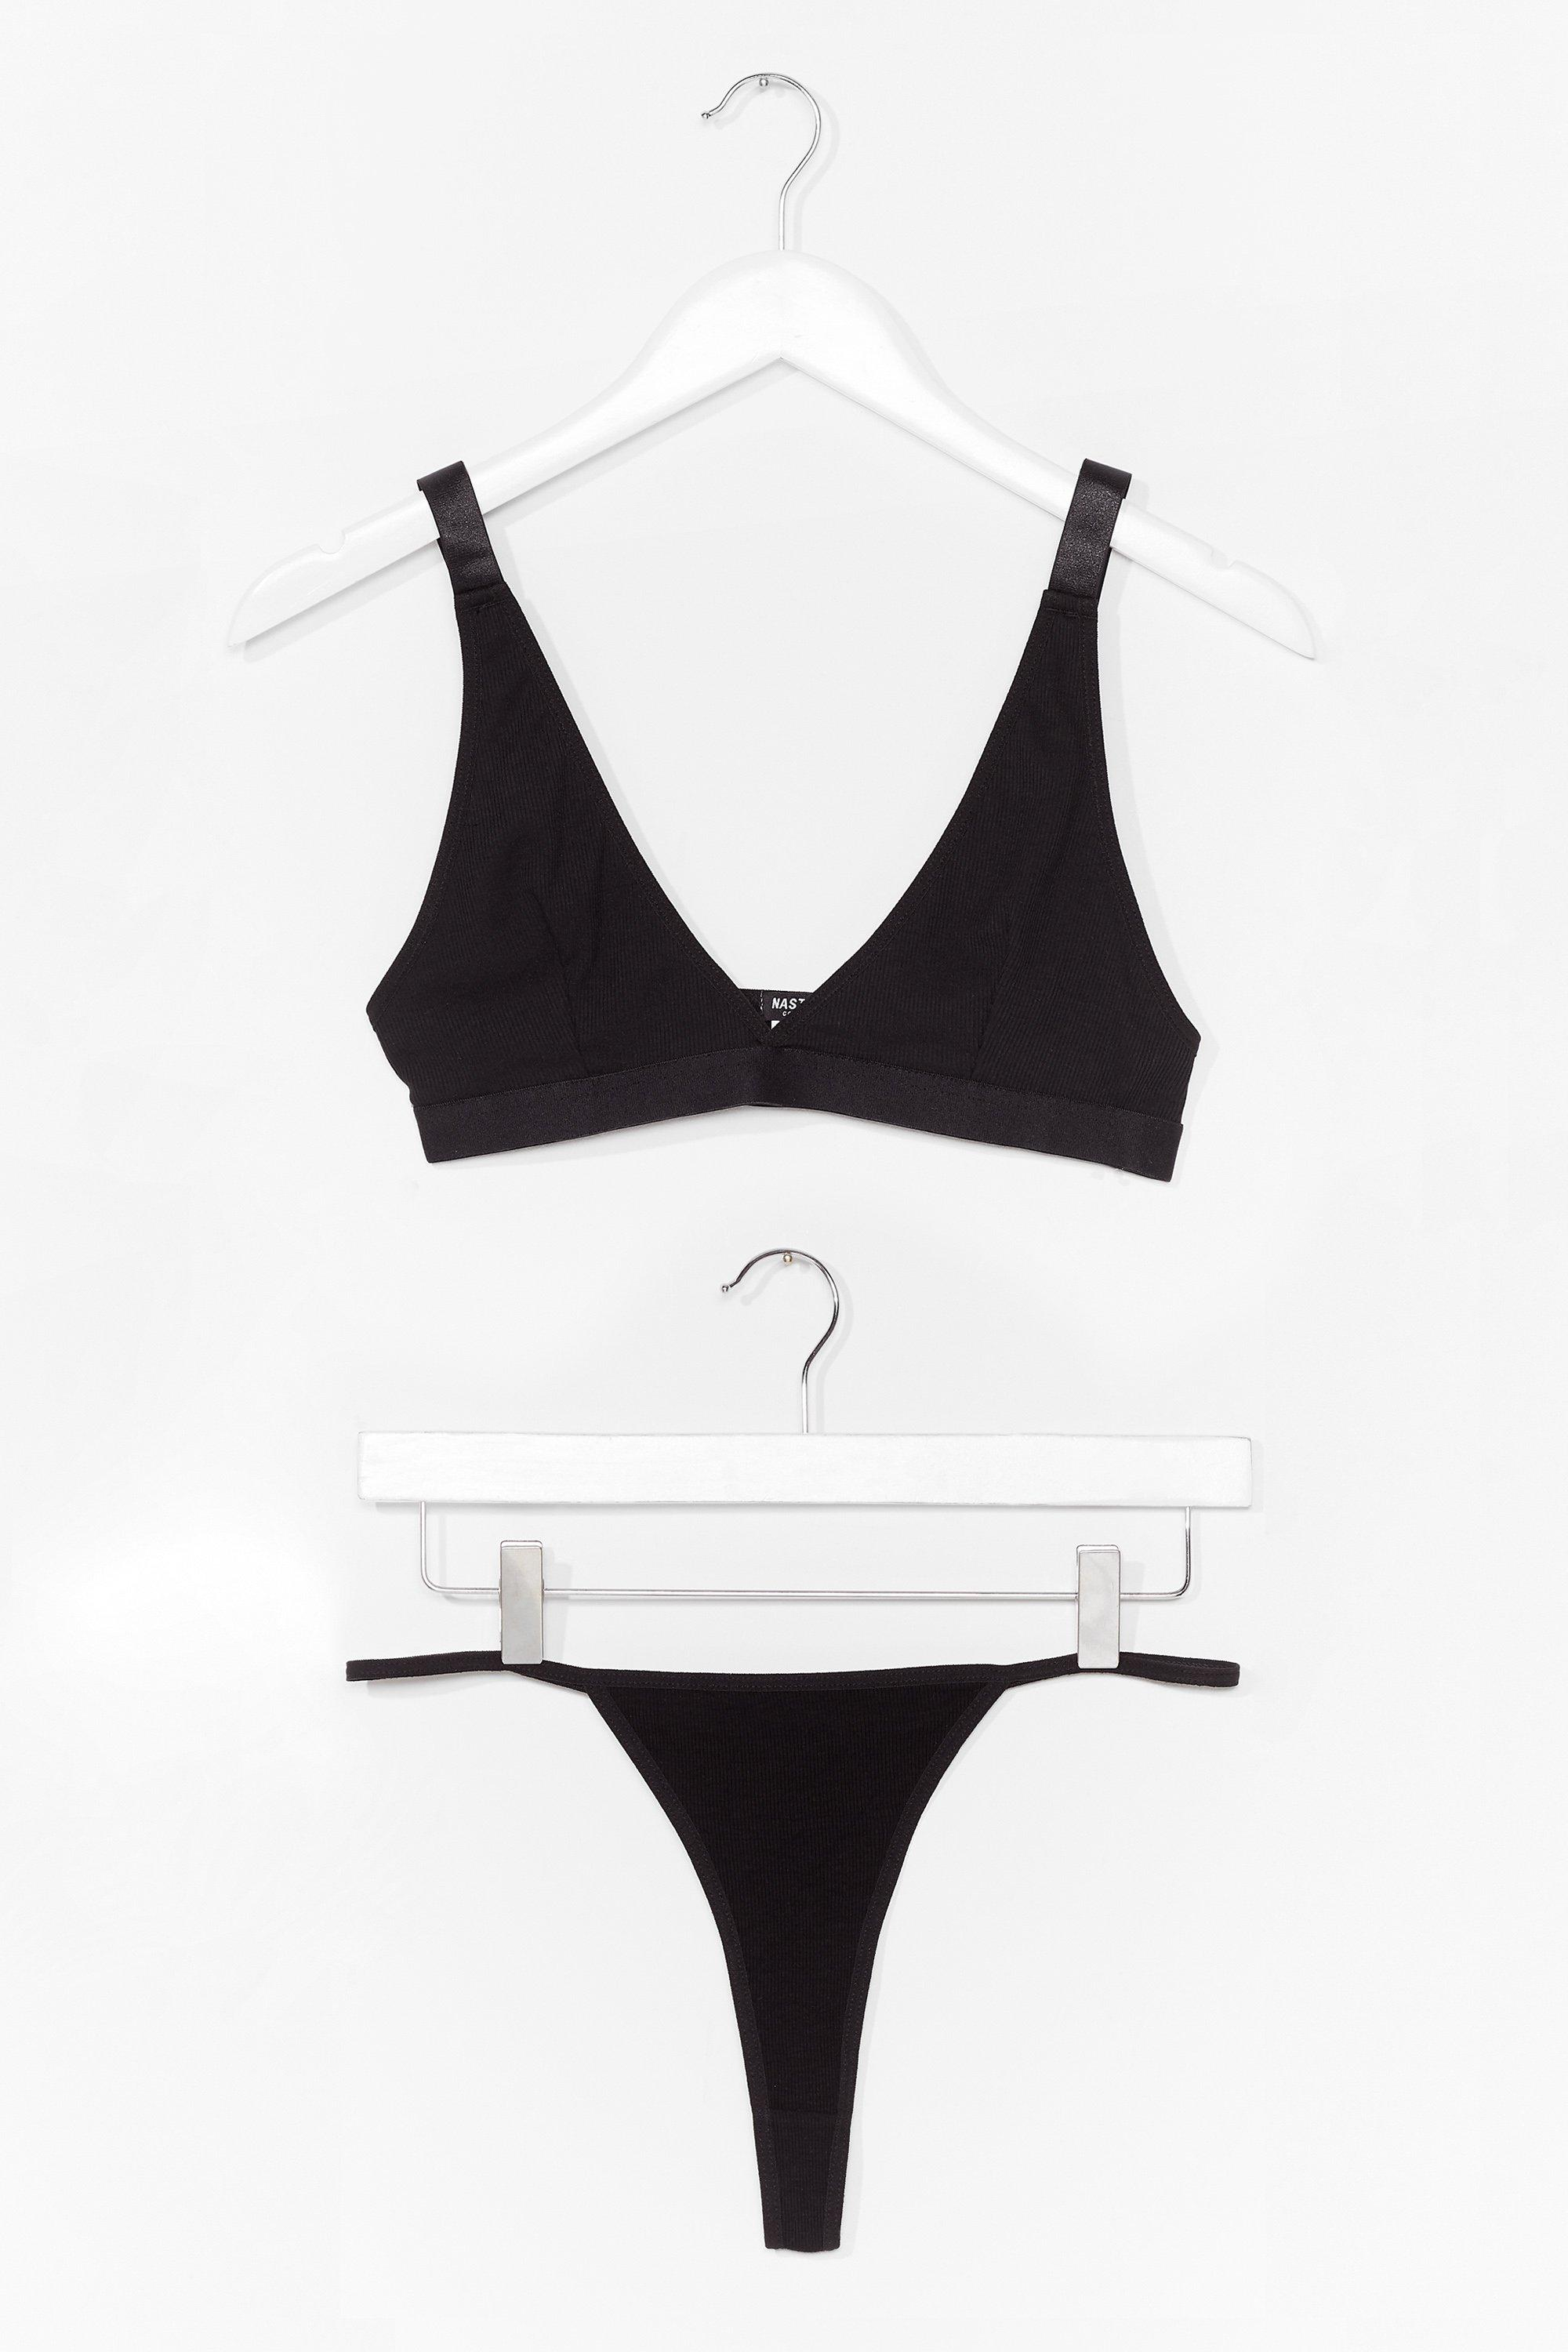 Do Your Breast Triangle Bralette and Panty Set